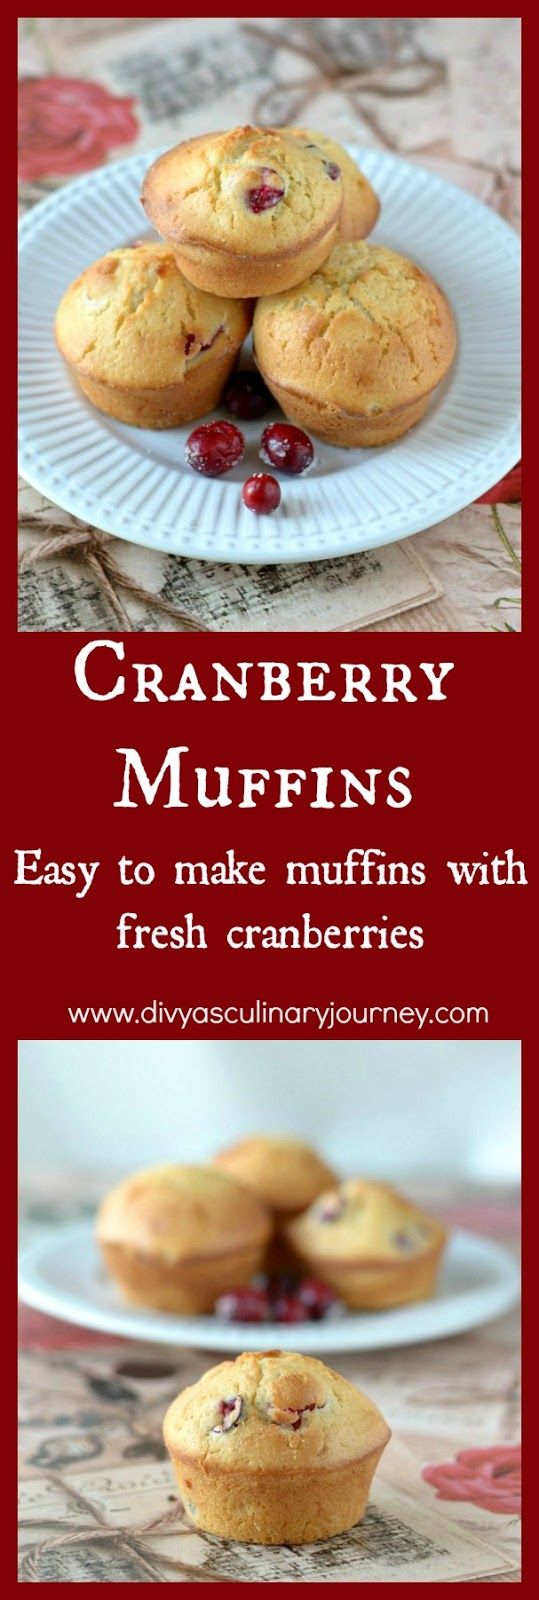 cranberry muffins recipe , muffins with fresh cranberries